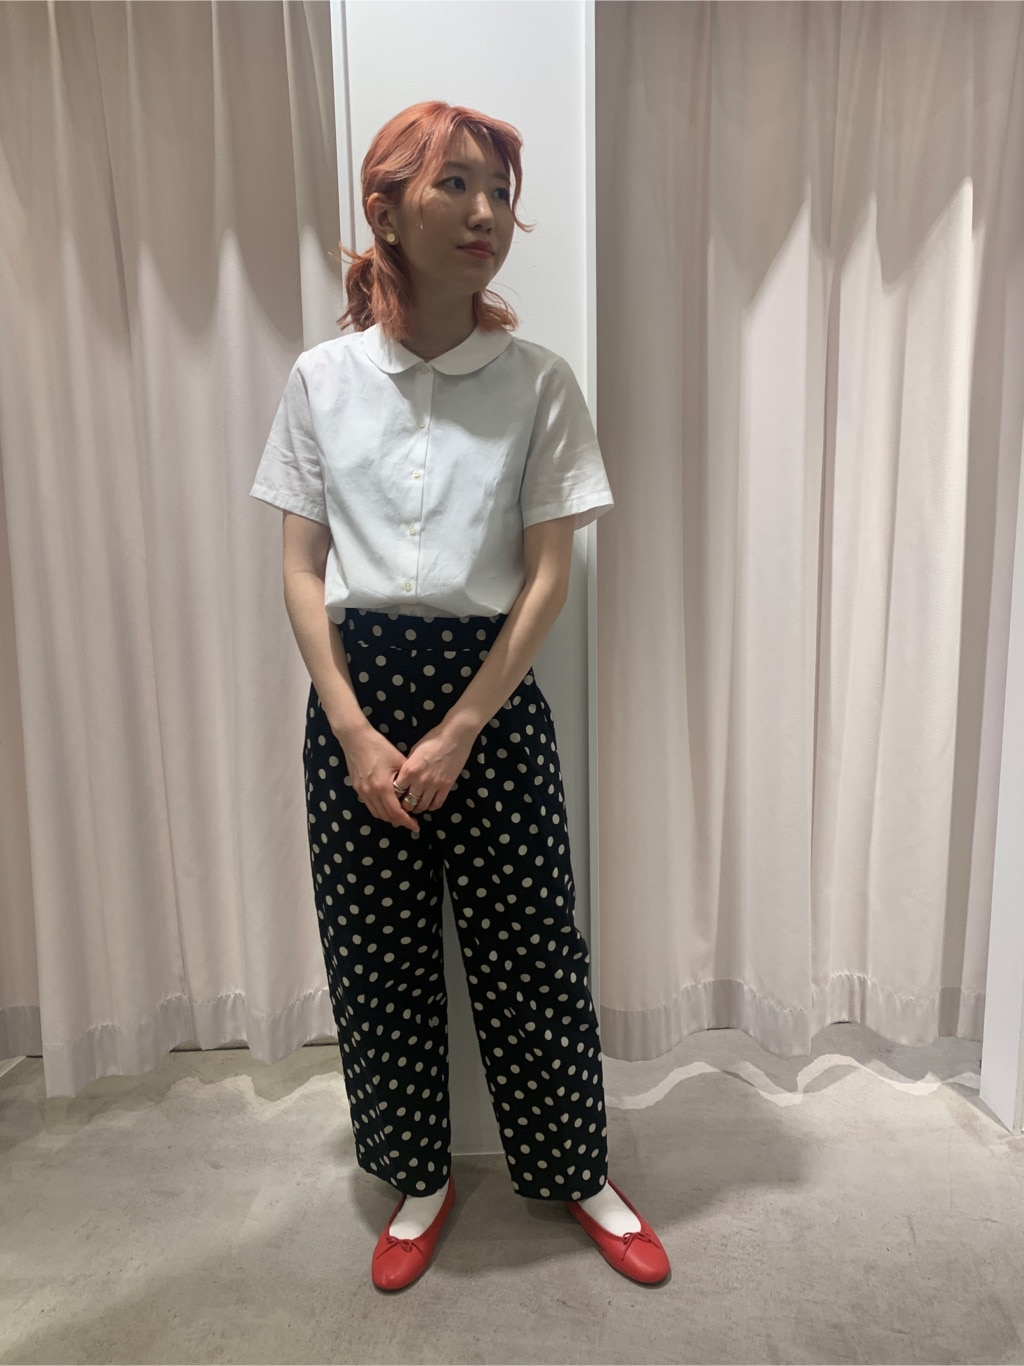 Dot and Stripes CHILD WOMAN ラフォーレ原宿 身長:160cm 2021.04.15